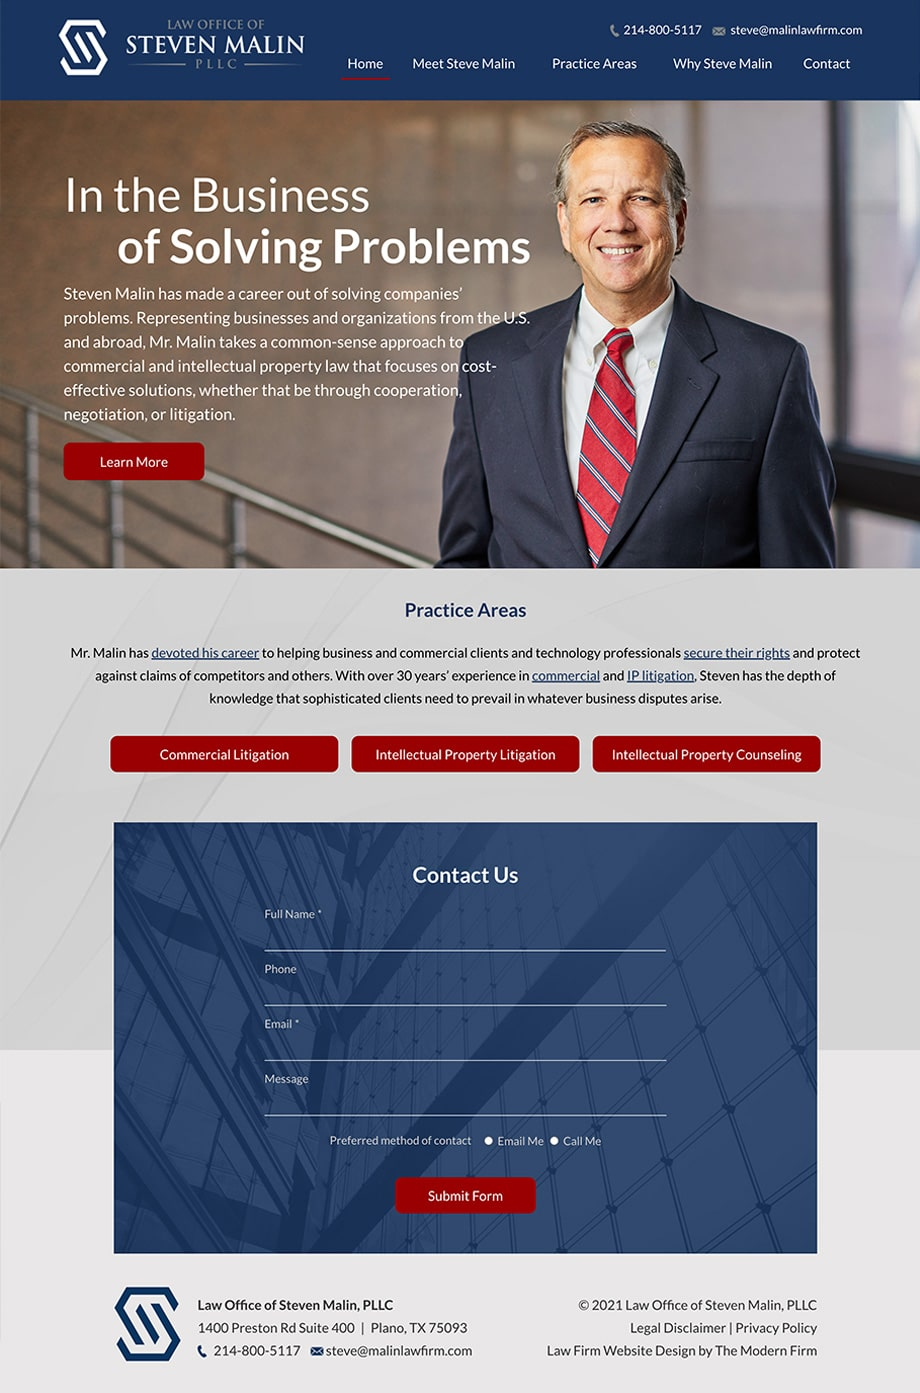 Law Firm Website Design for Law Office of Steven Malin, PLLC